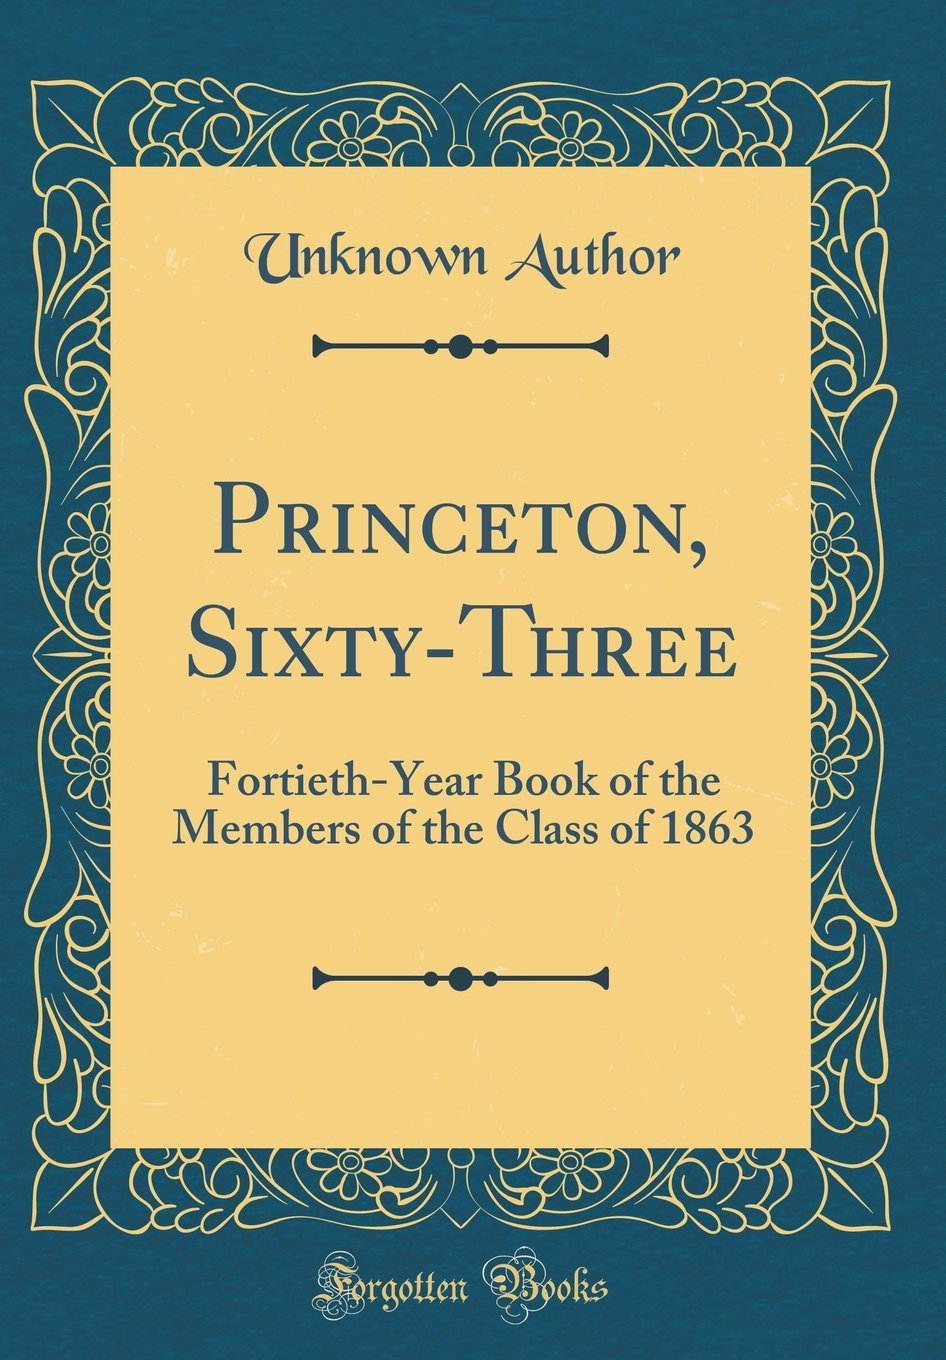 Princeton, Sixty-Three: Fortieth-Year Book of the Members of the Class of 1863 (Classic Reprint) pdf epub